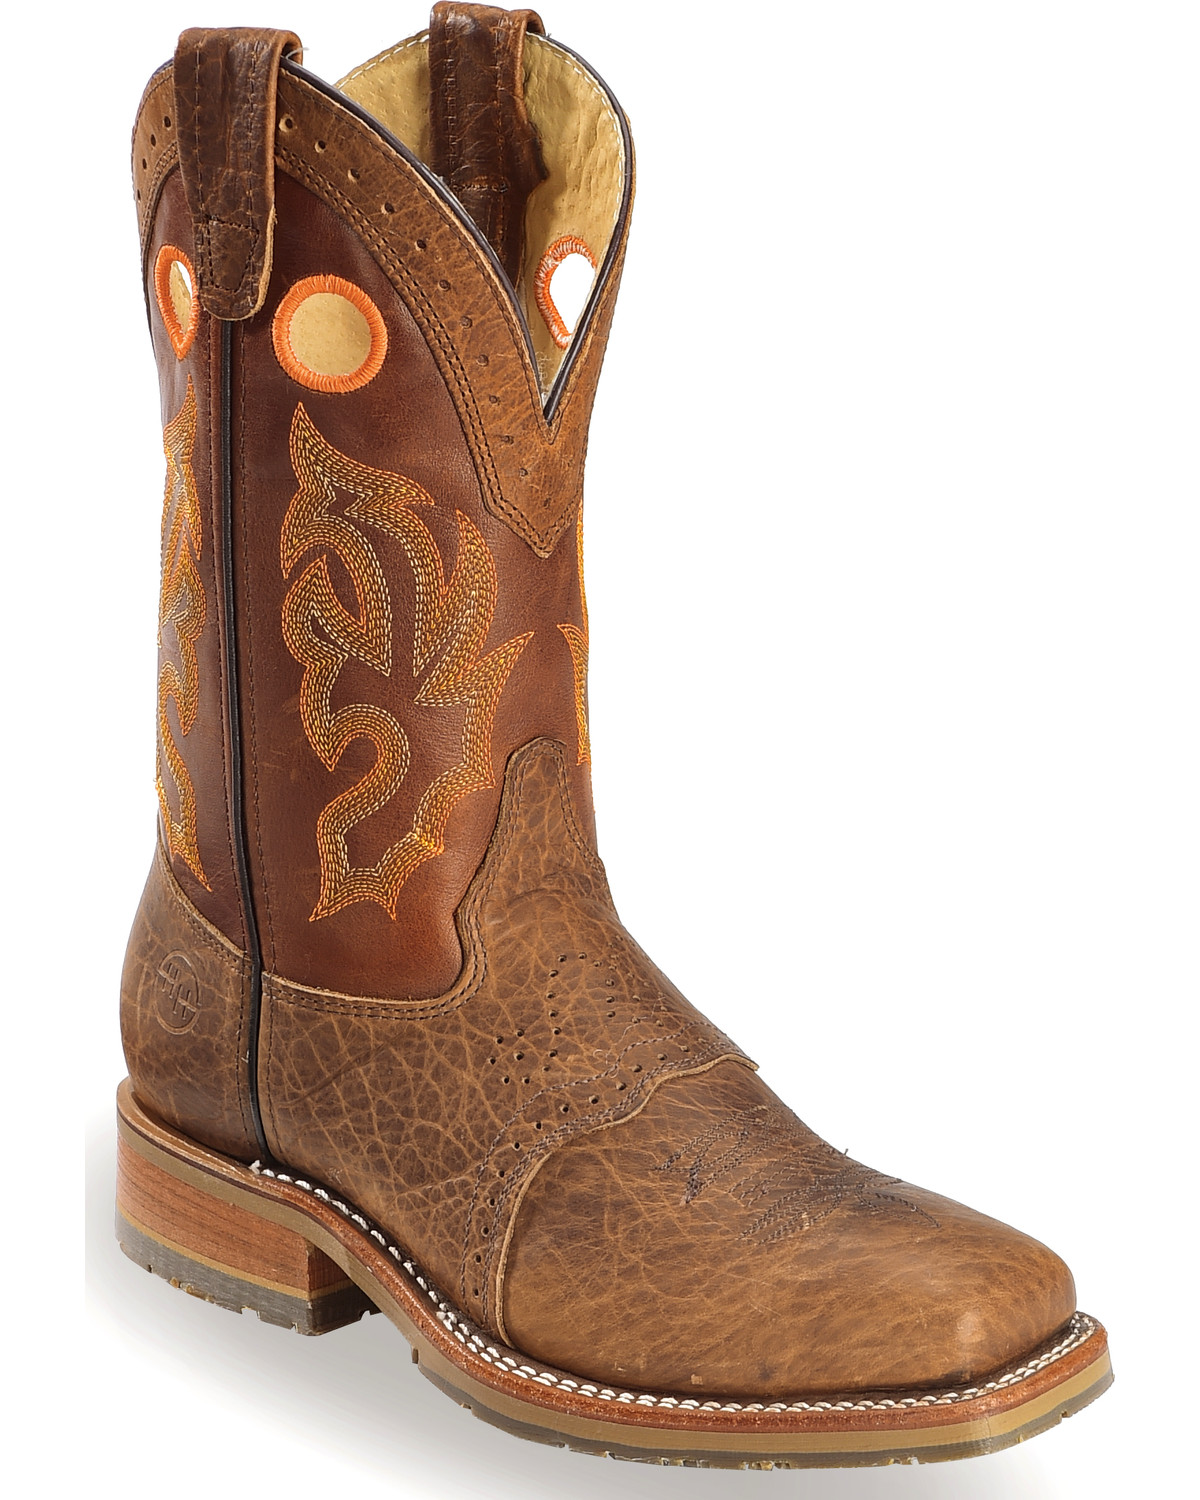 $25 off Trending. Get exclusive Boot Barn coupon codes & discounts up to $25 off when you join the reofeskofu.tk email list. Ends Dec. 31, used today.